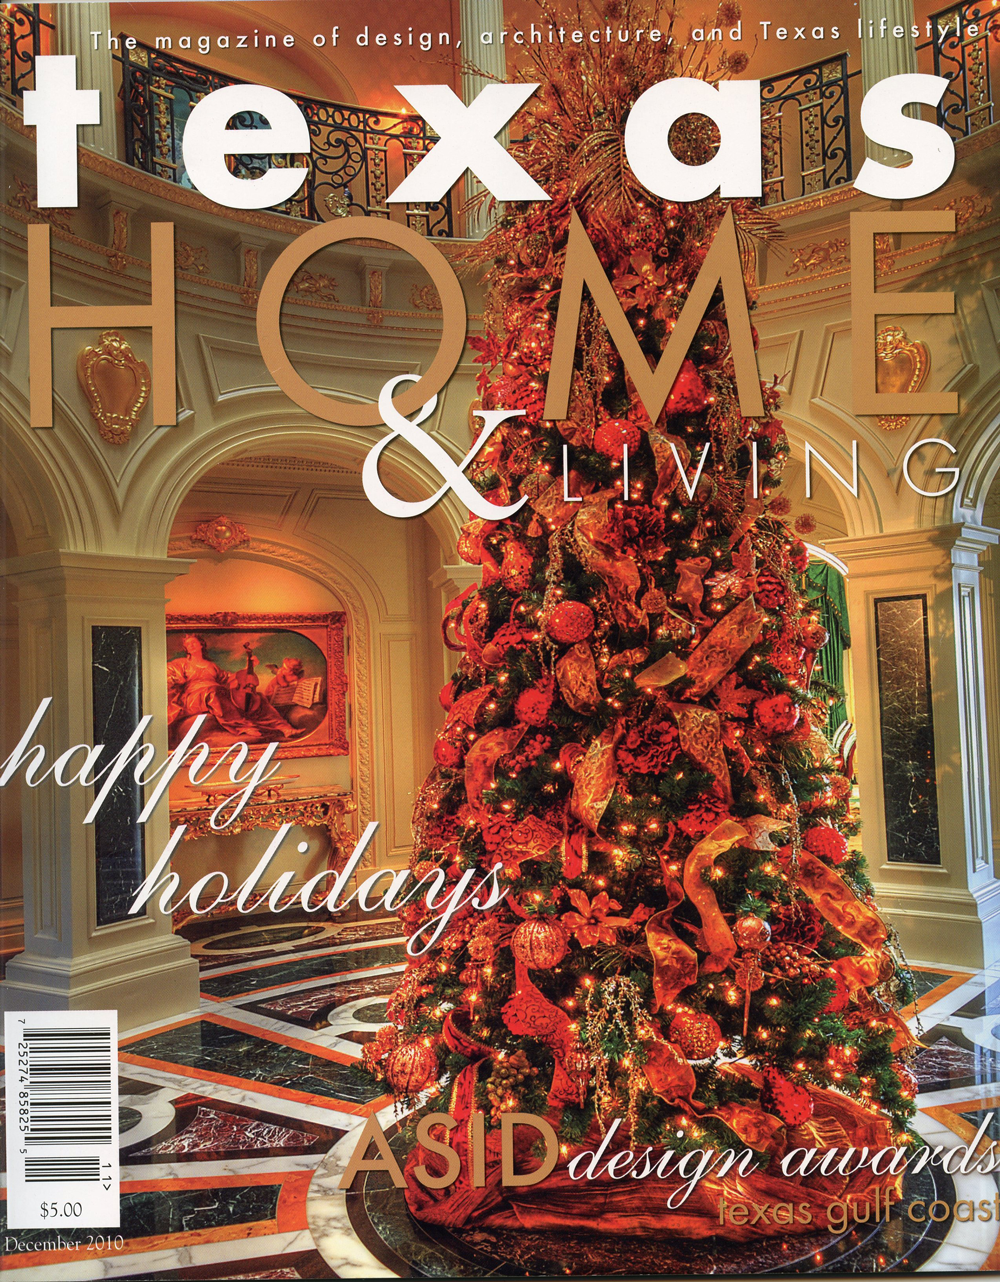 4-TX-Home&Living-2010-ASID-Awards-Issue.png